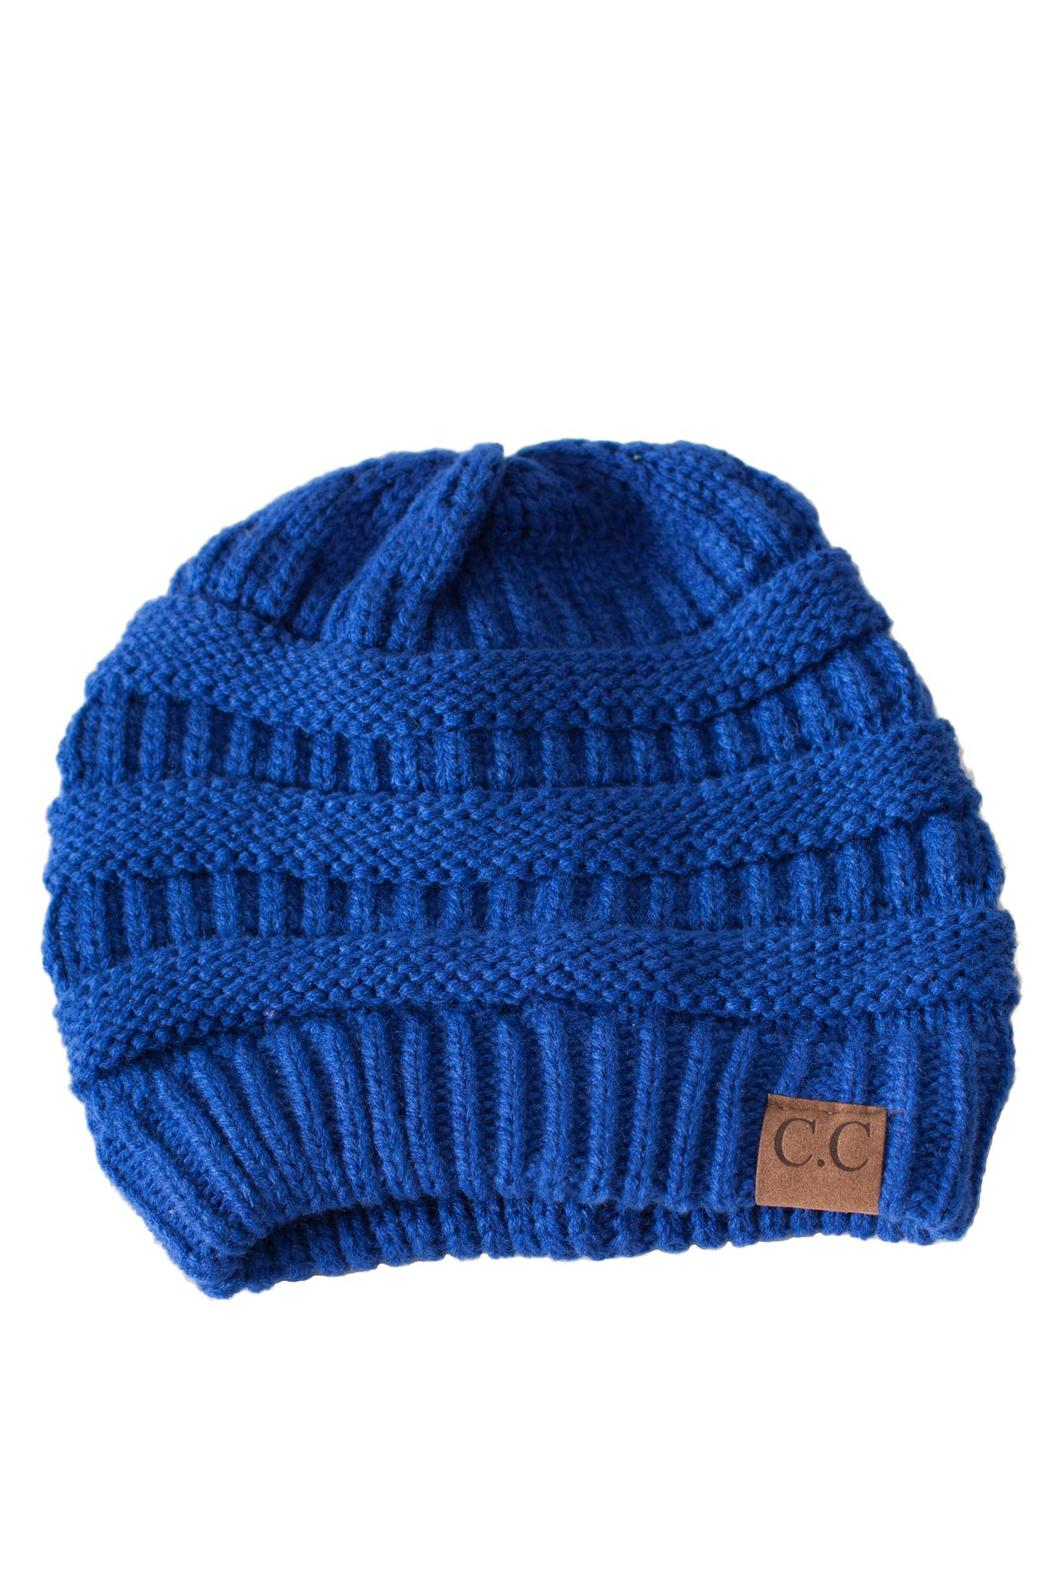 C.C. Royal Blue Beanie - Main Image